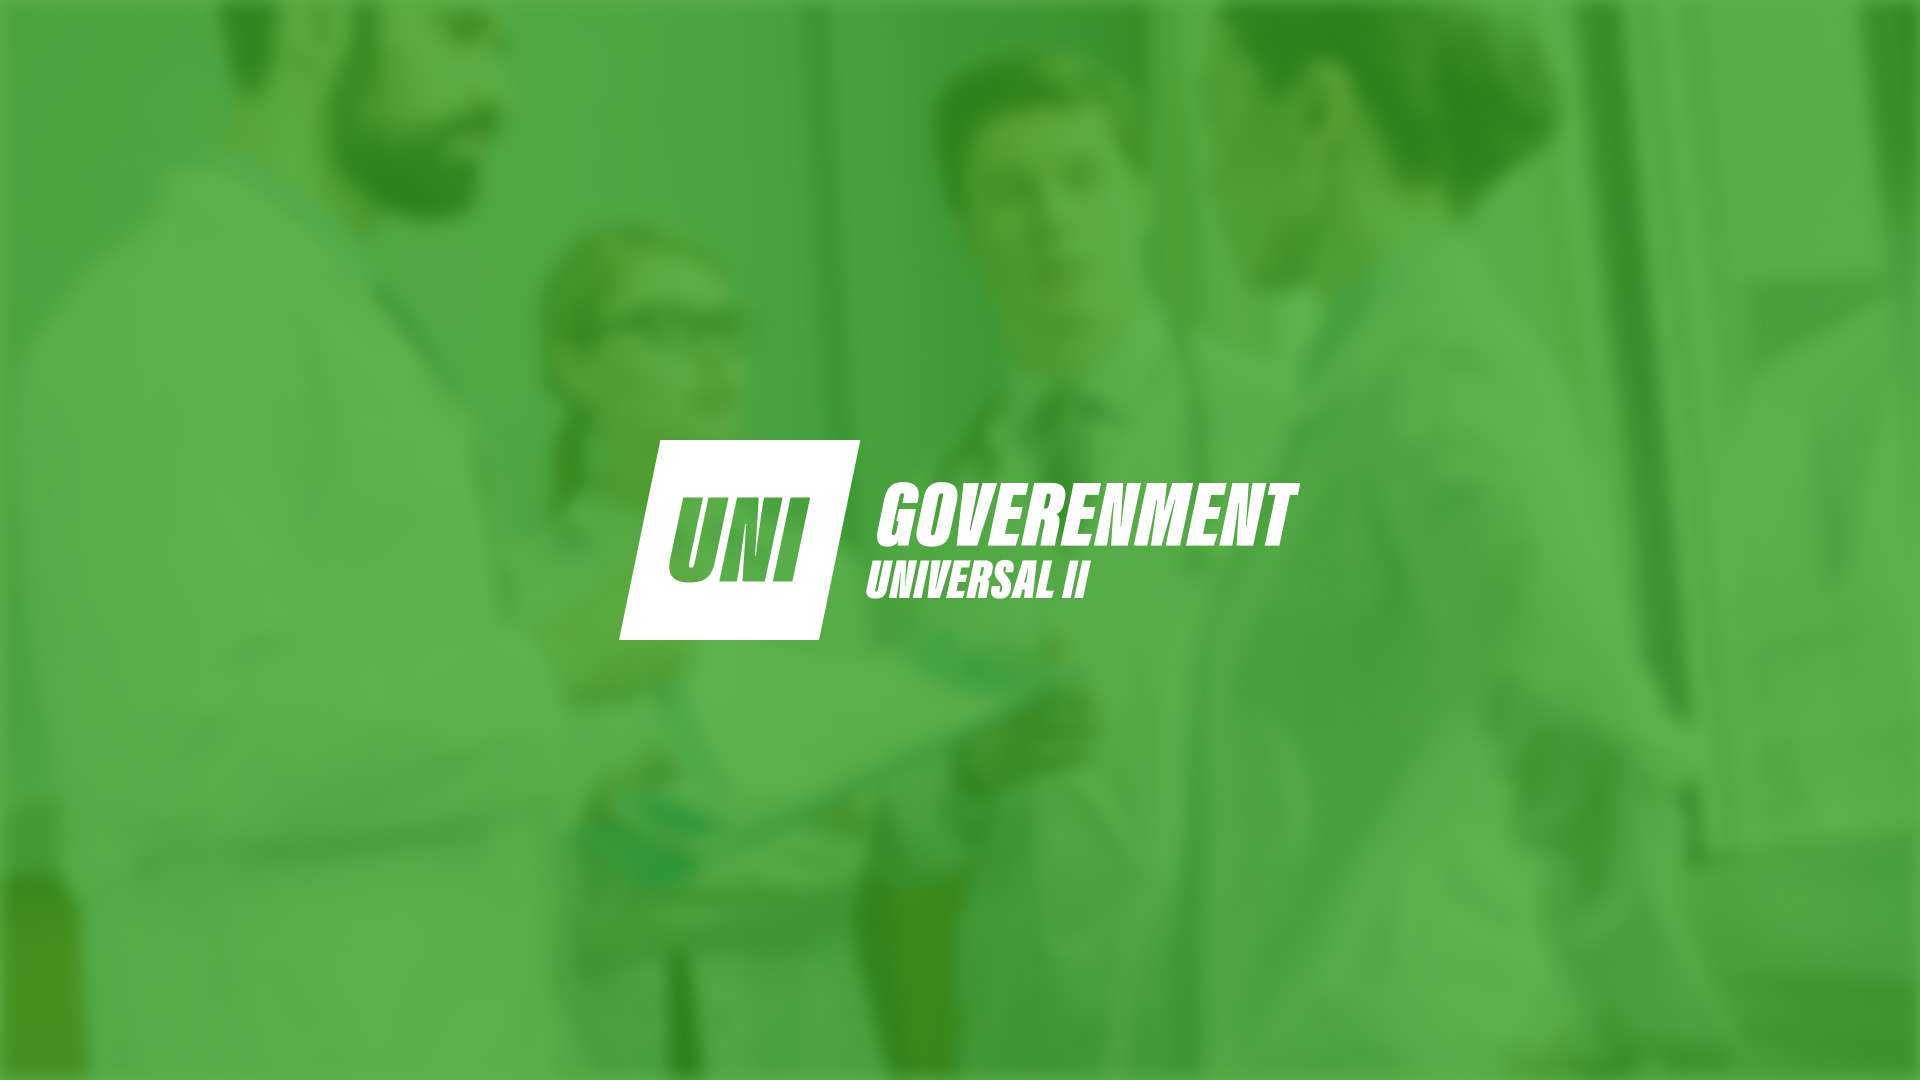 Goverenment Universal